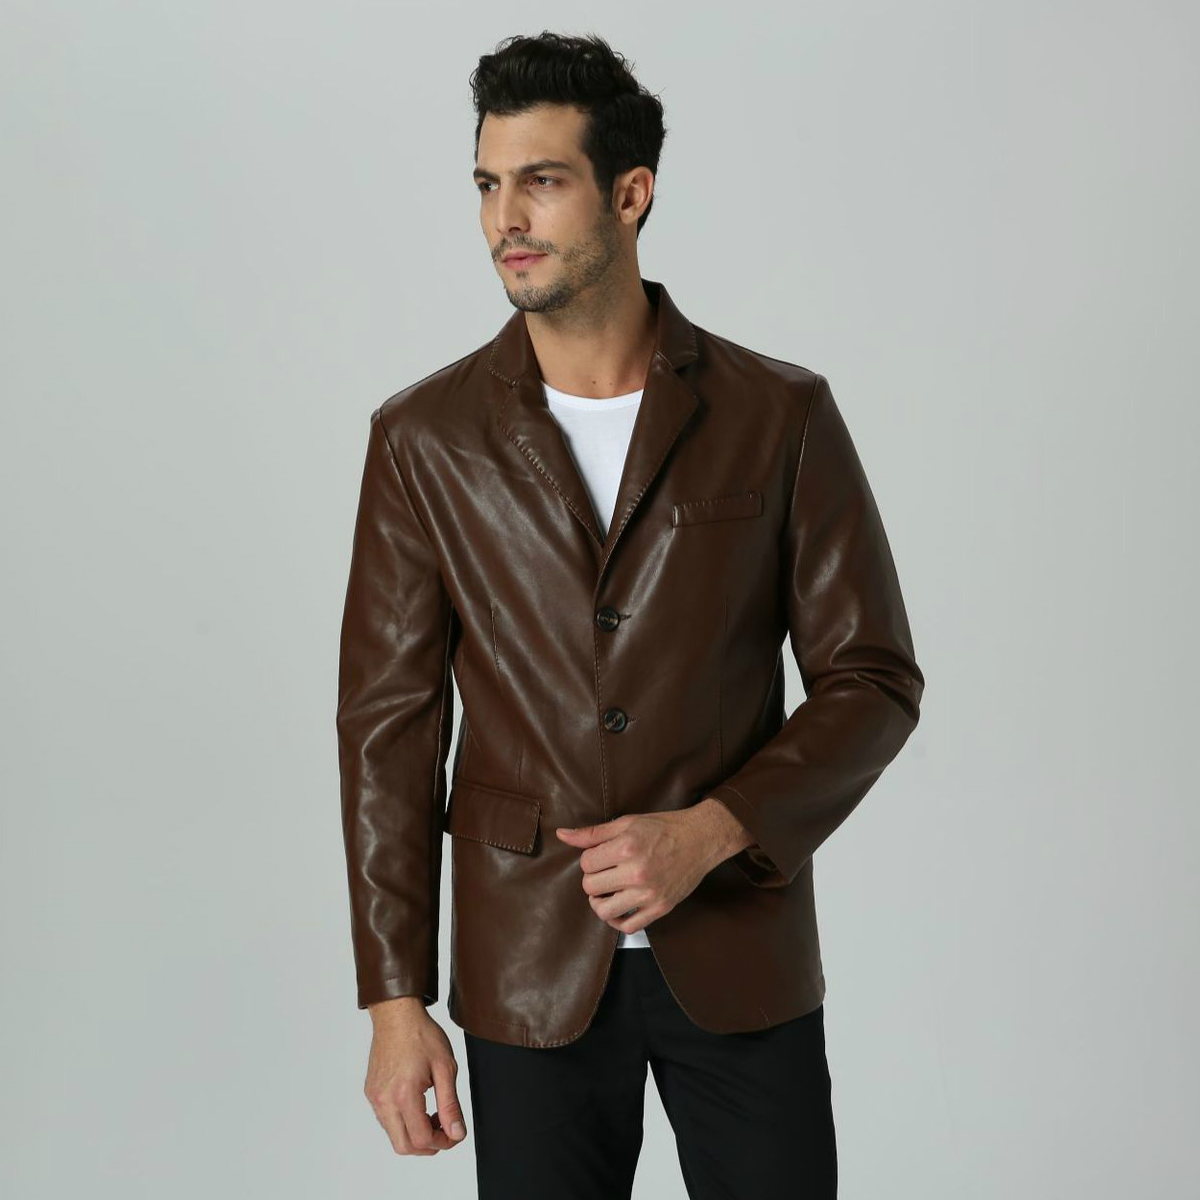 Hot Faux Leather Brown Men Blazer Casual Business PU Leather Slim Fit Plus Size Suit Jacket For Boy Long Sleeve Male Suit Blazer